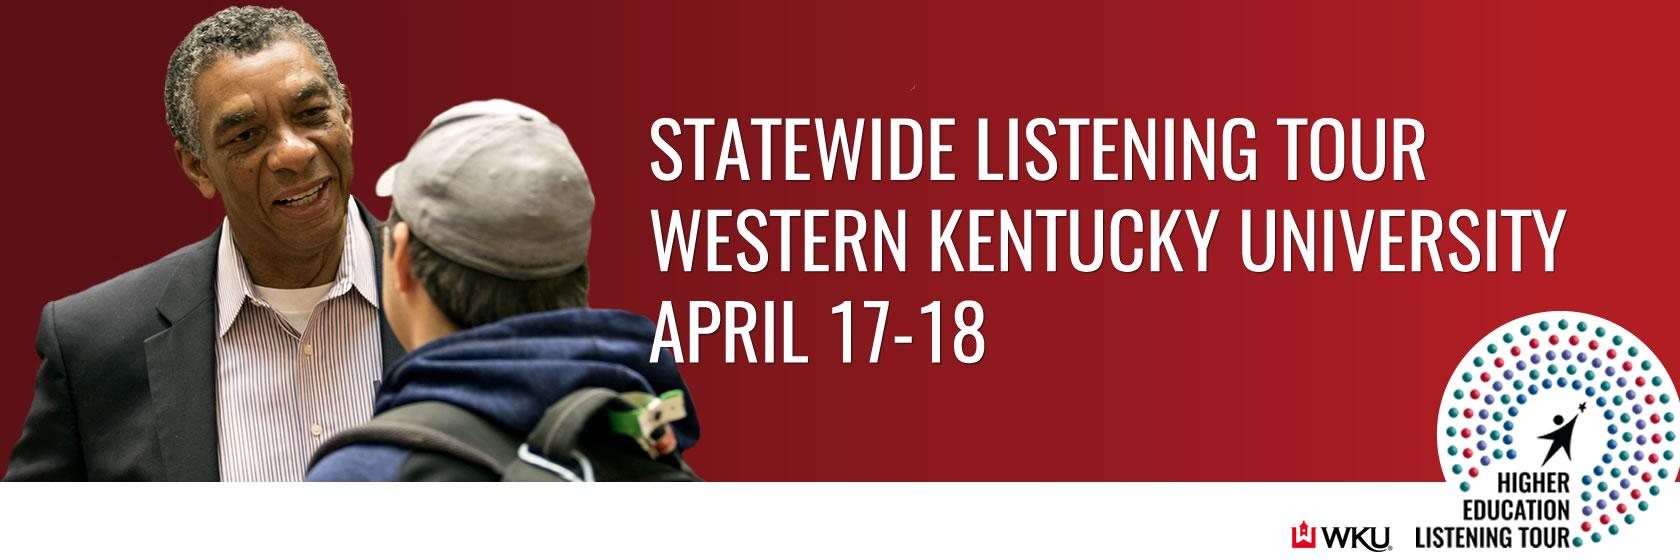 Statewide listening tour to continue at WKU, April 17-18.